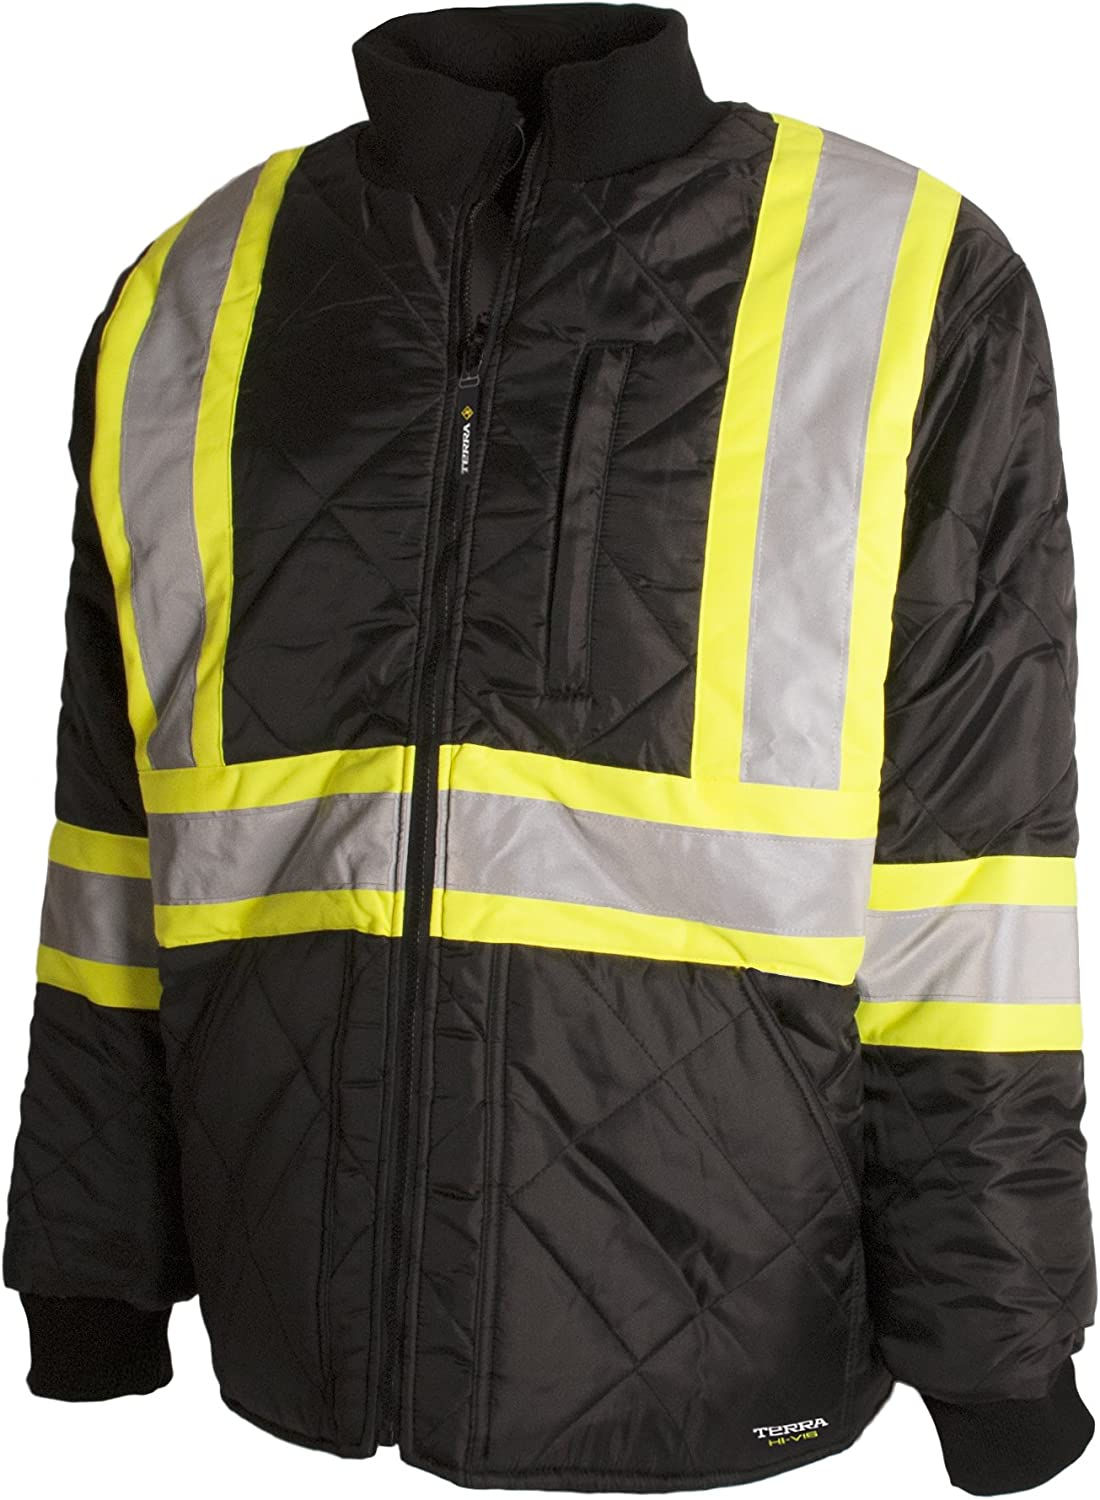 Terra 116505BKM High-Visibility Quilted And Lined Reflective Safety Freezer Jacket, Black, Medium